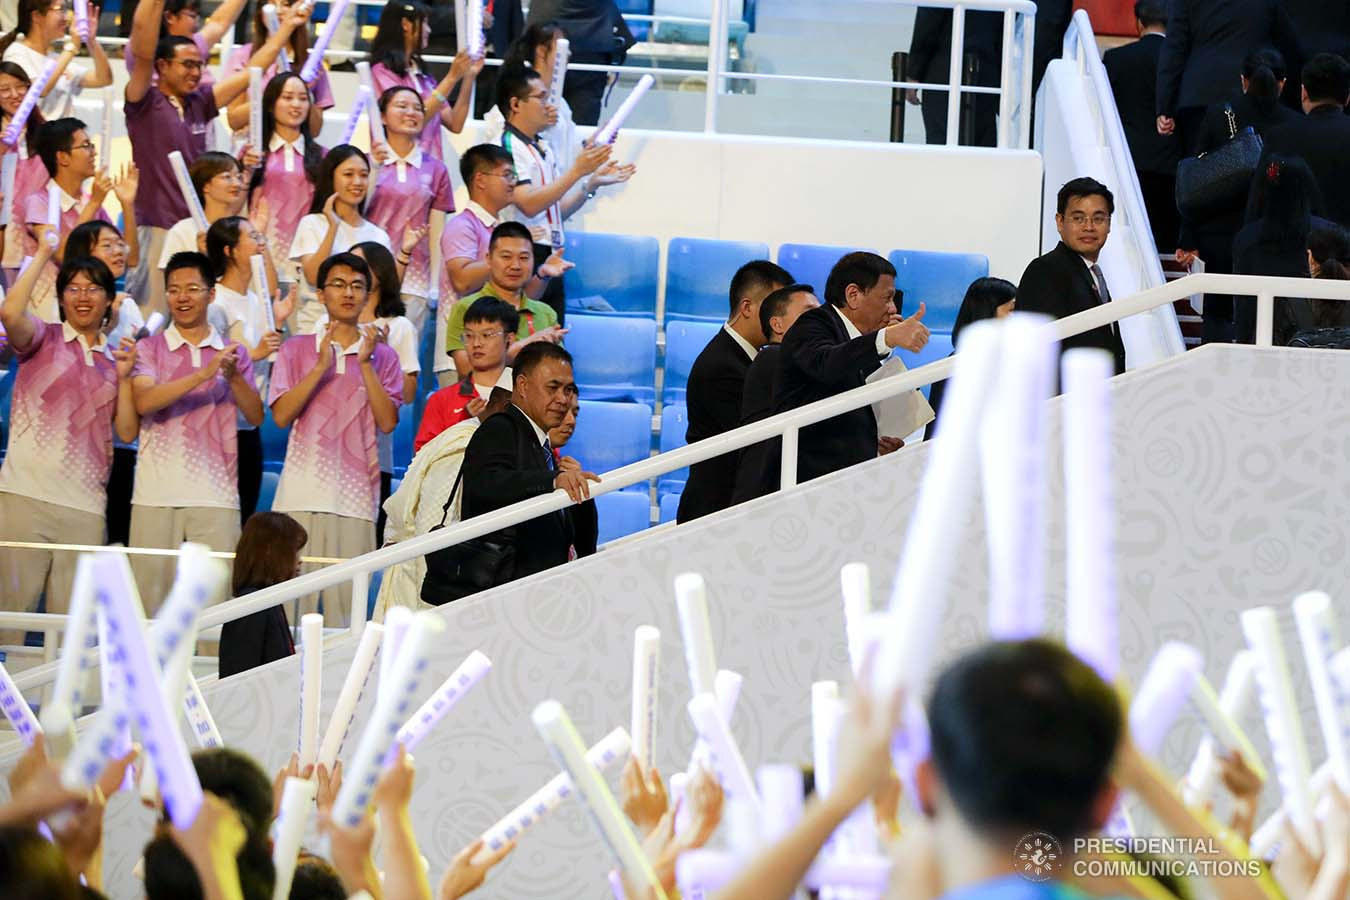 President Rodrigo Roa Duterte gives the thumbs up to the Gilas Pilipinas during the opening ceremony of the FIBA Basketball World Cup 2019 at the National Aquatics Center in Beijing, People's Republic of China on August 30, 2019. ROBINSON NIÑAL JR./PRESIDENTIAL PHOTO